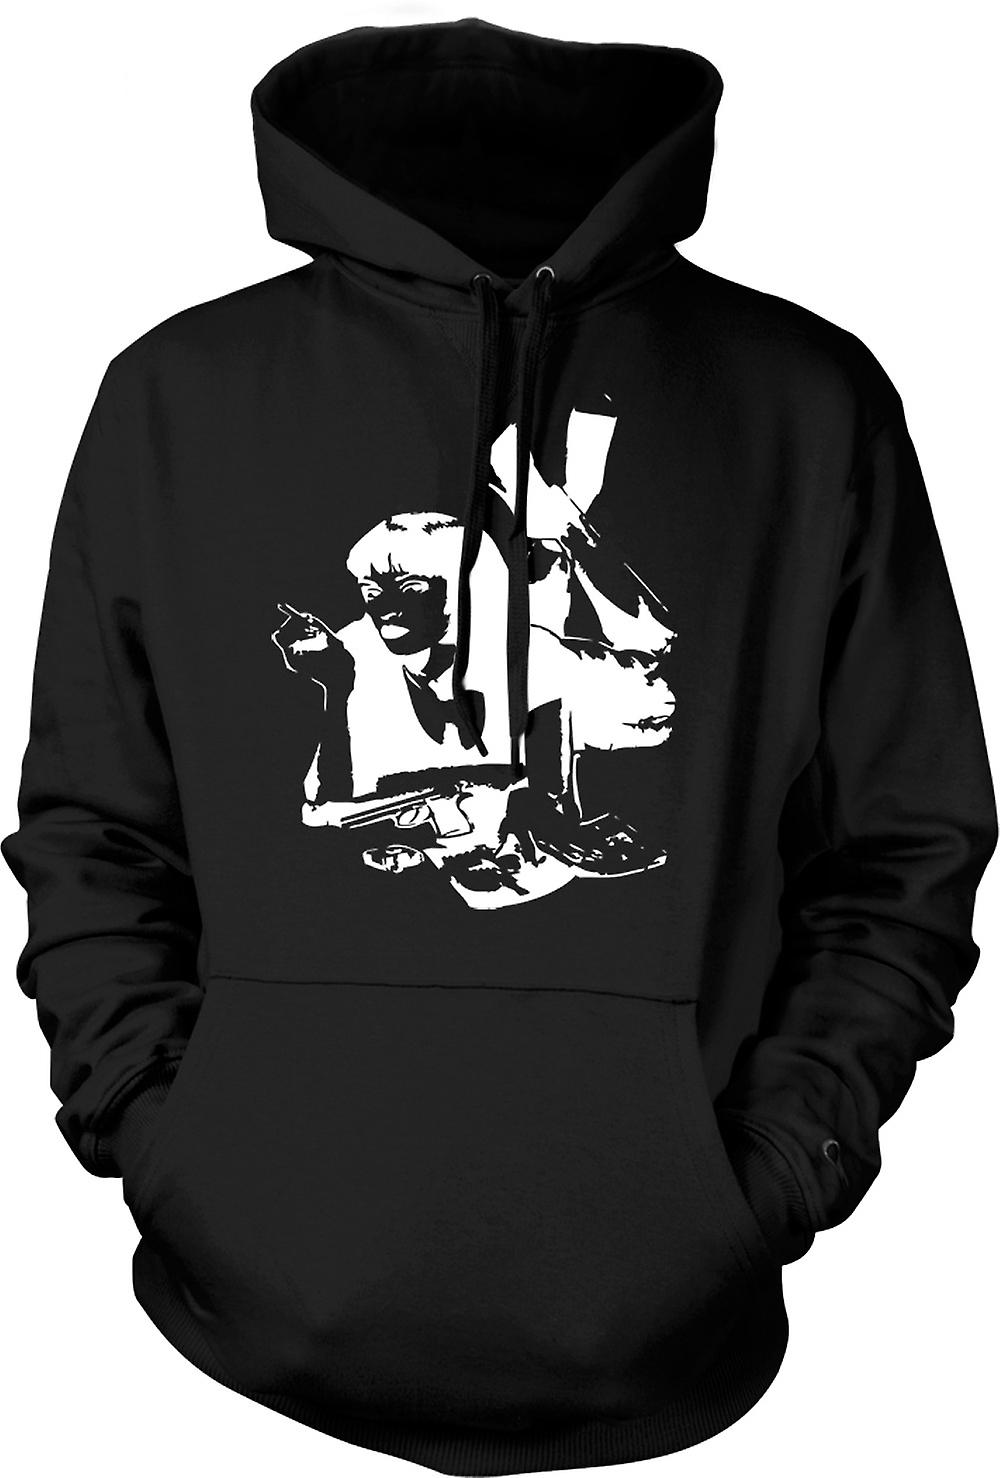 Herren Hoodie - Pulp Fiction - Mia Wallace - Stencil